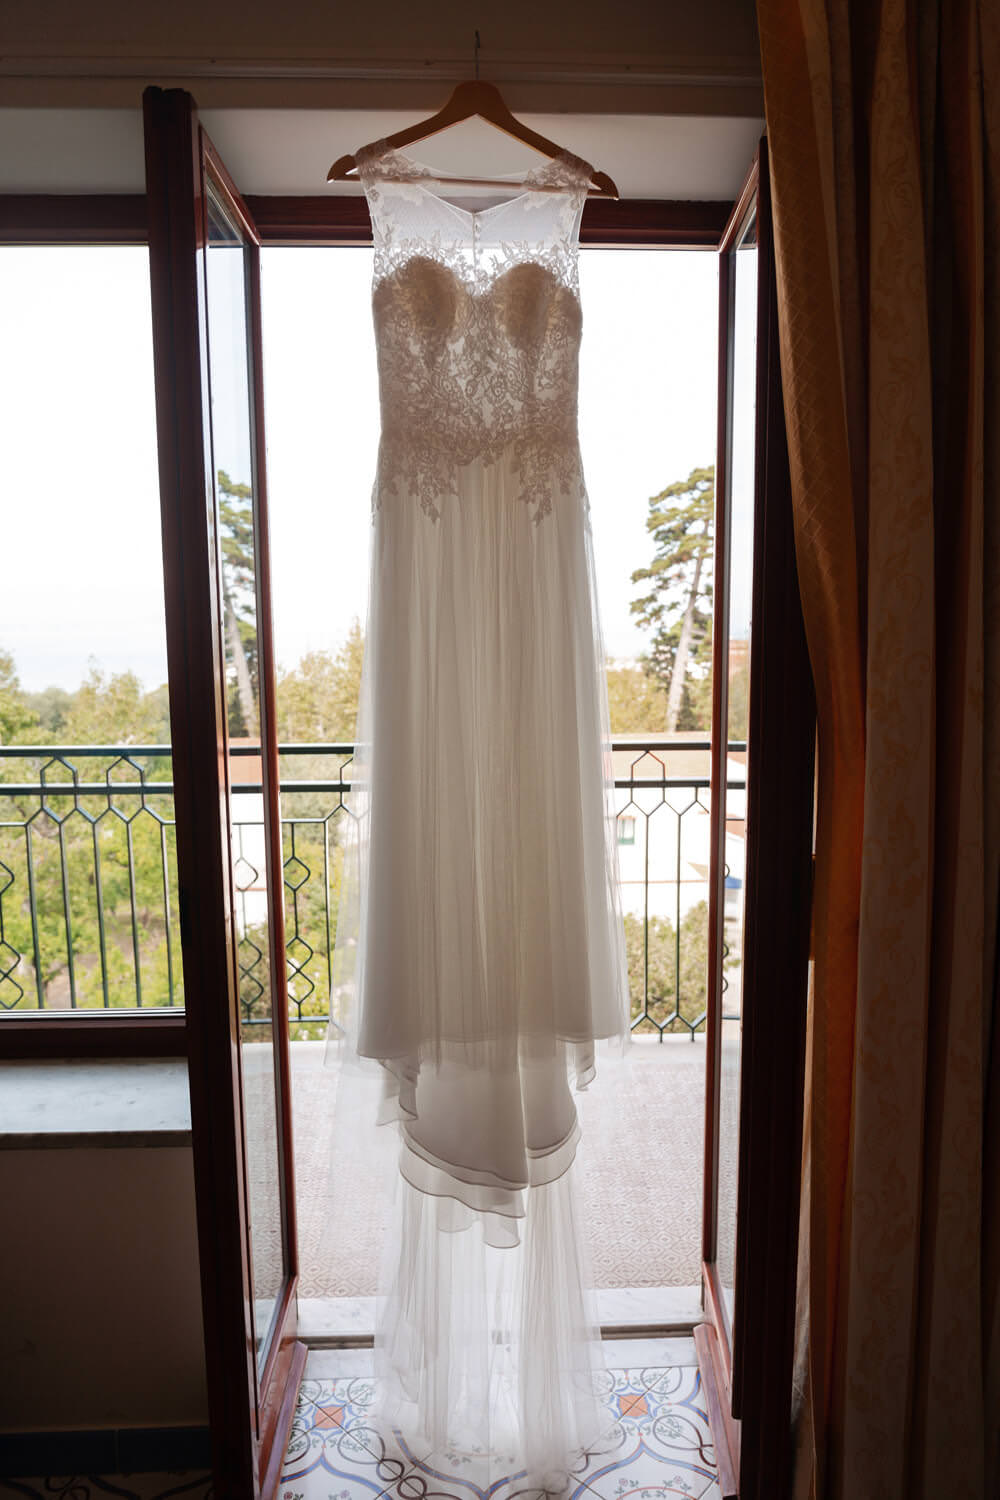 brides dress in window